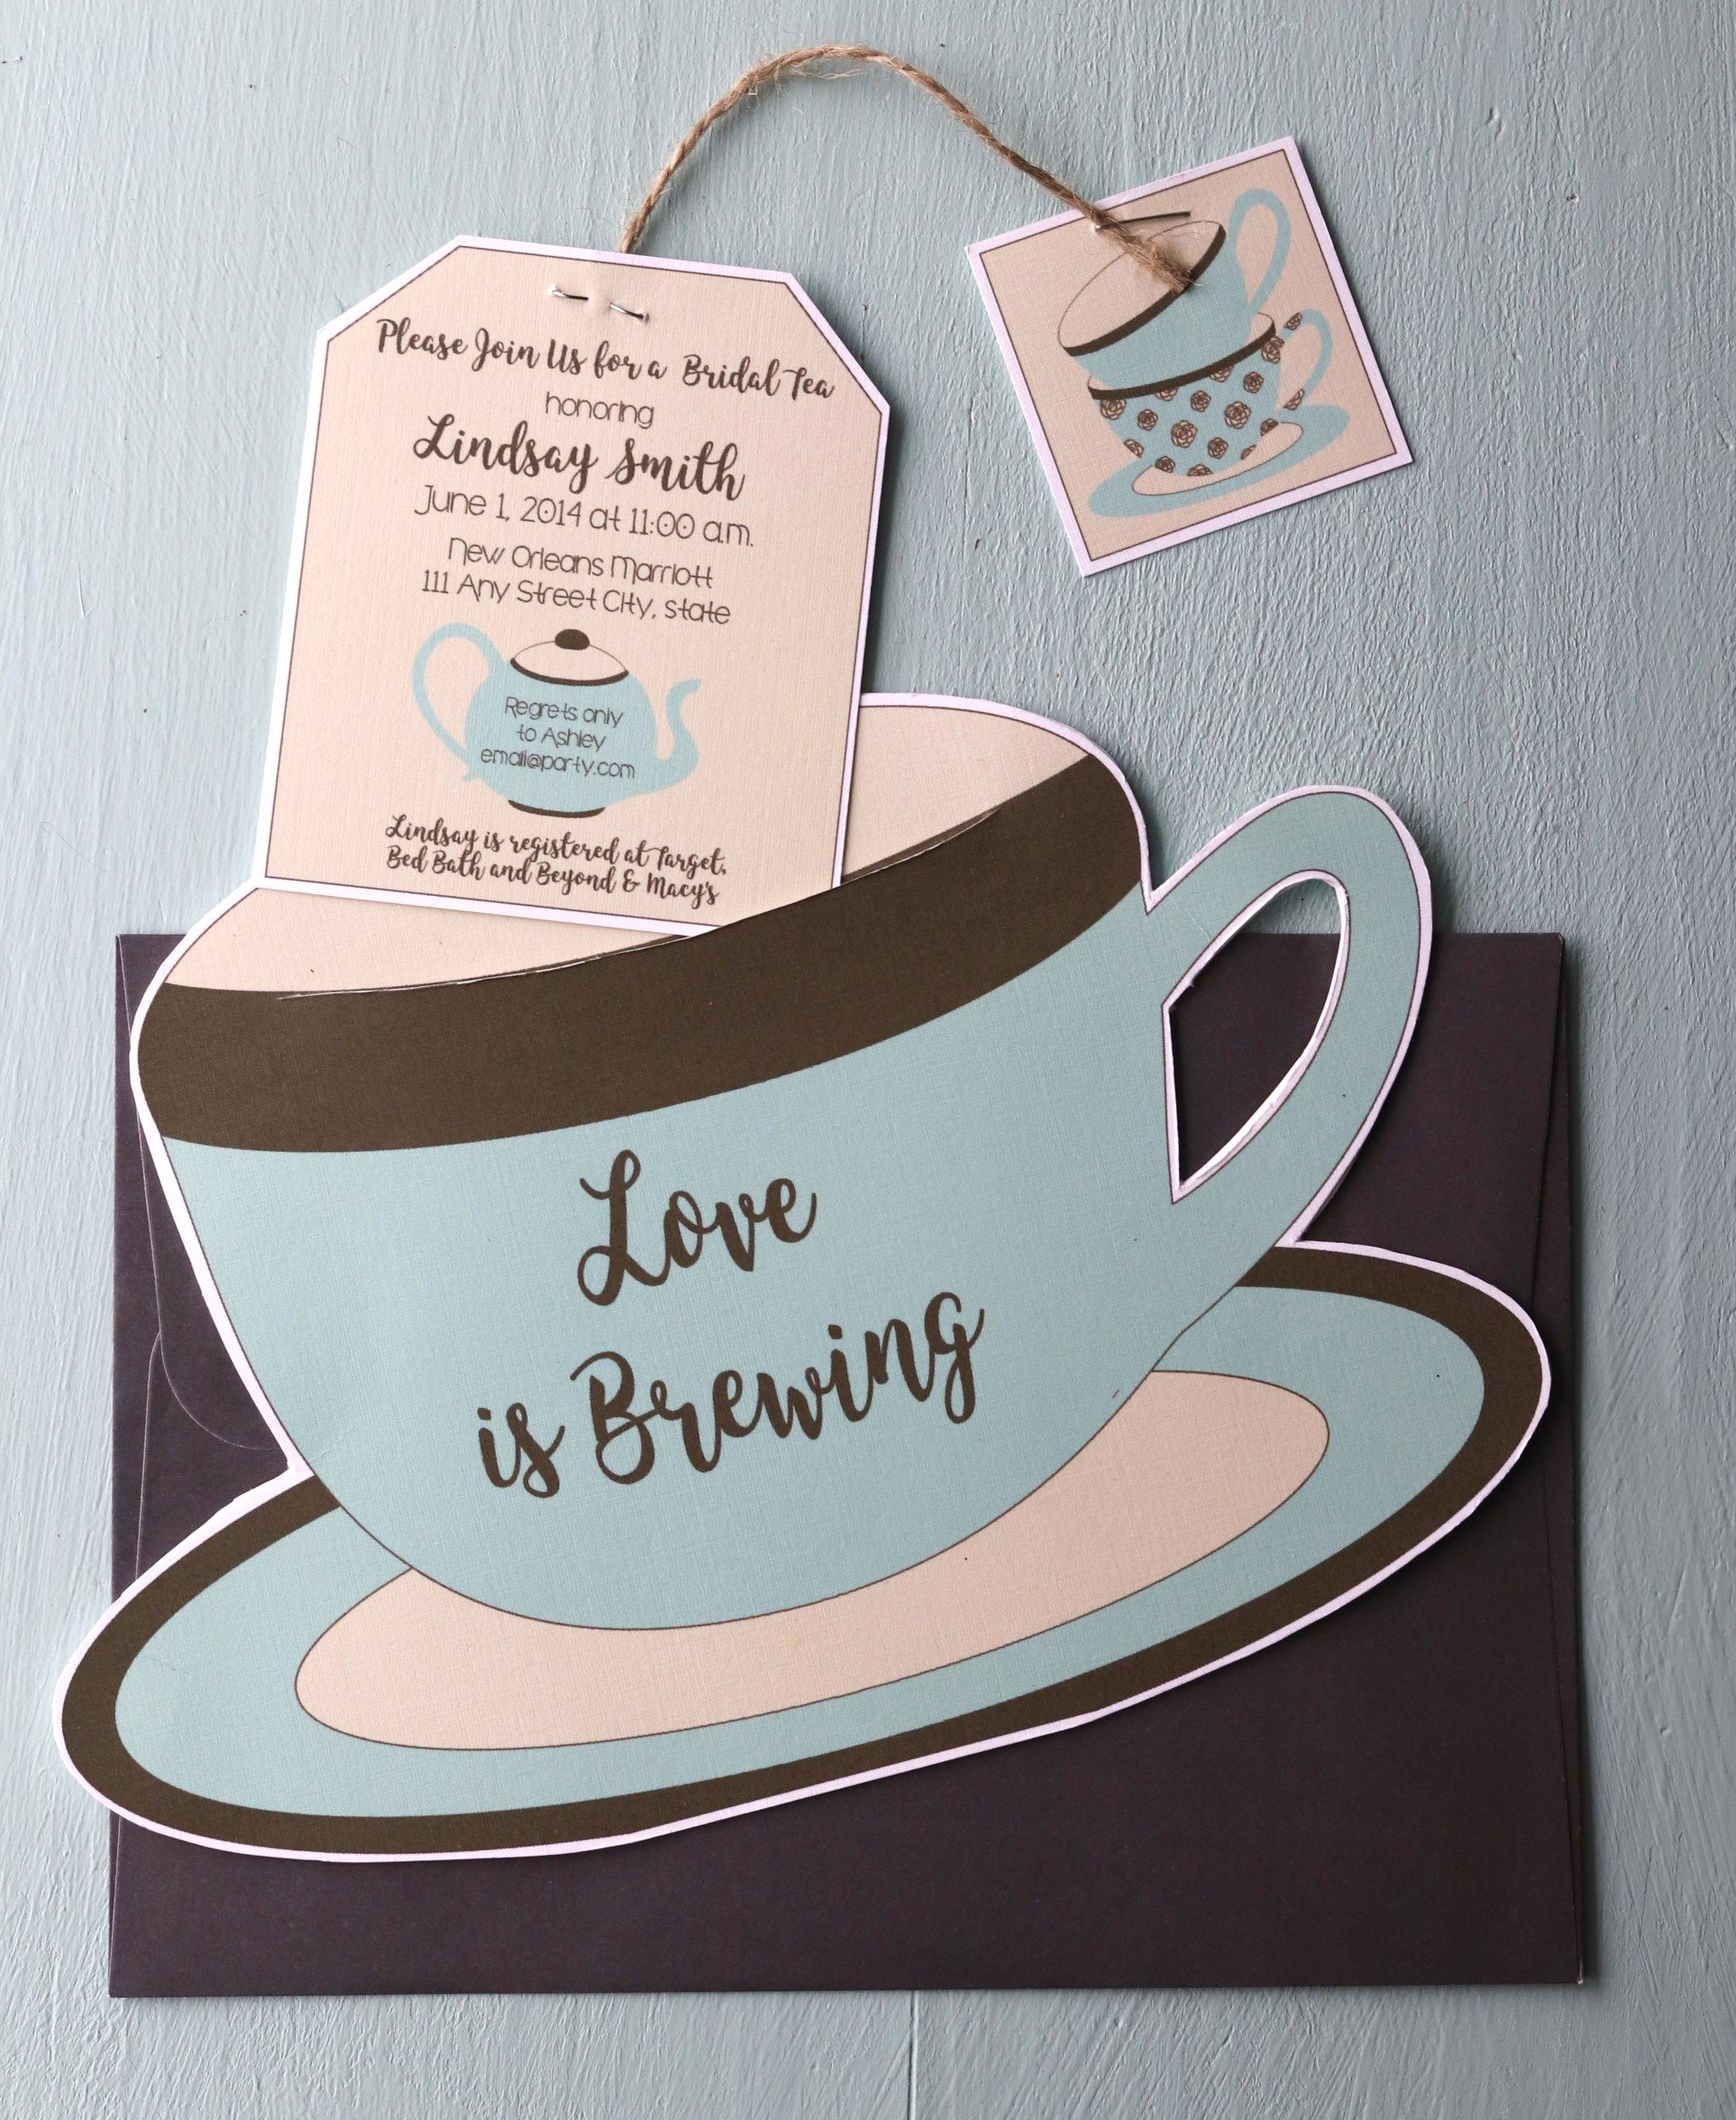 non traditional bridal showers tea party click through to find matching games favors thank you cards inserts decor and more